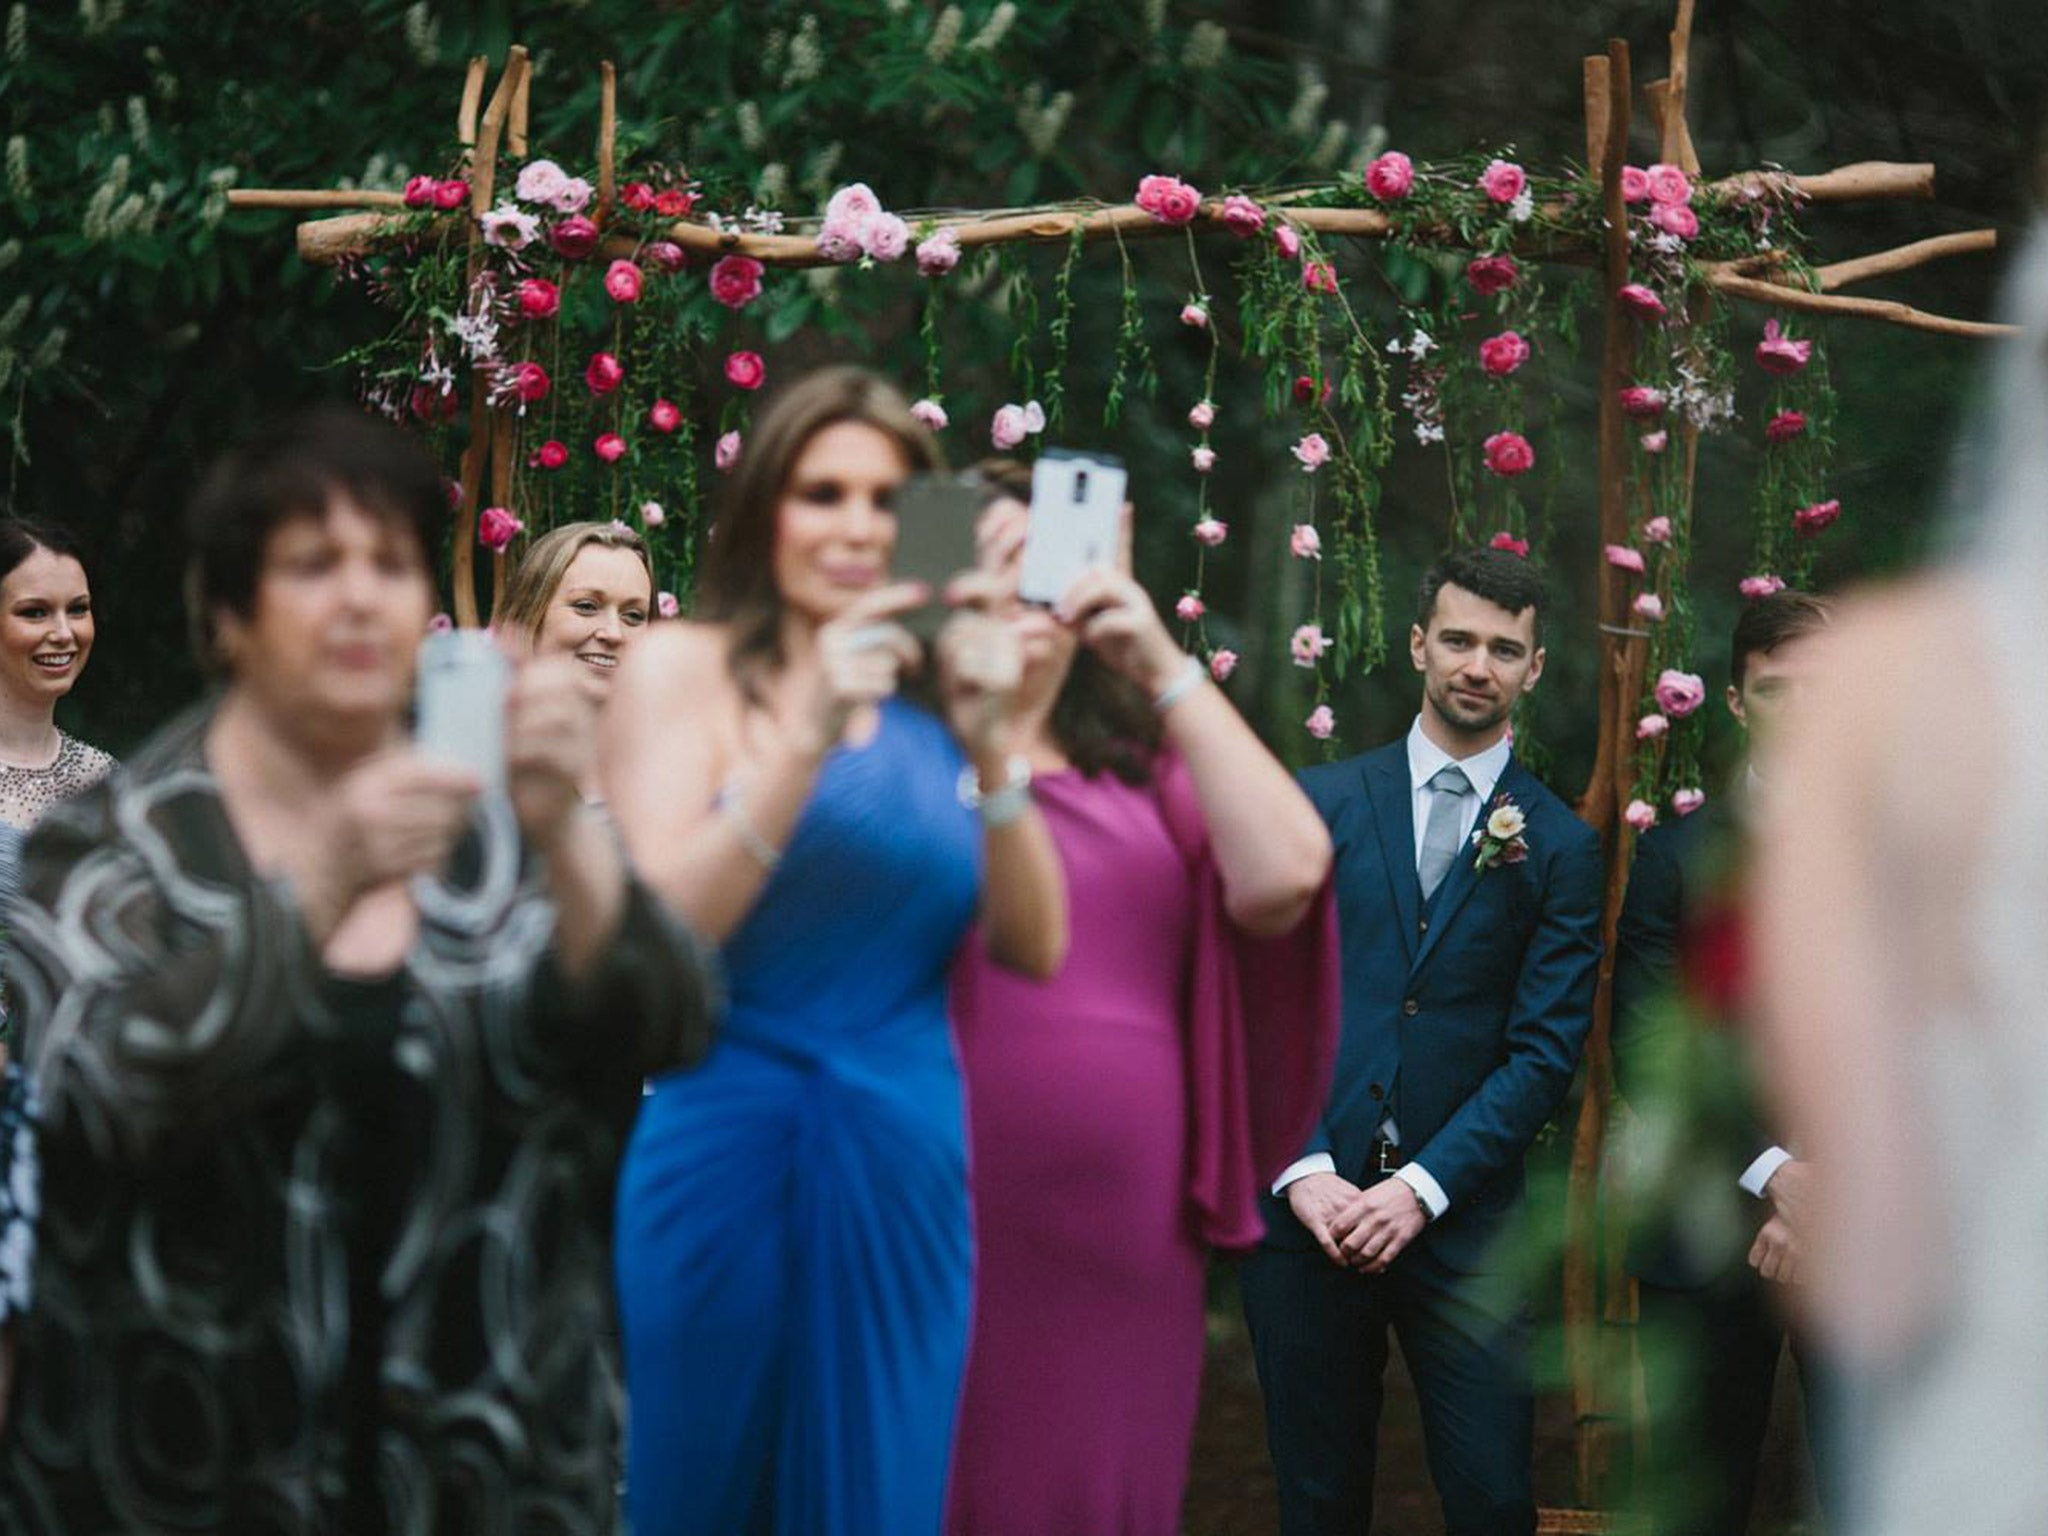 Annoyed wedding photographer spells out why phones at a wedding are the worst in viral Facebook post